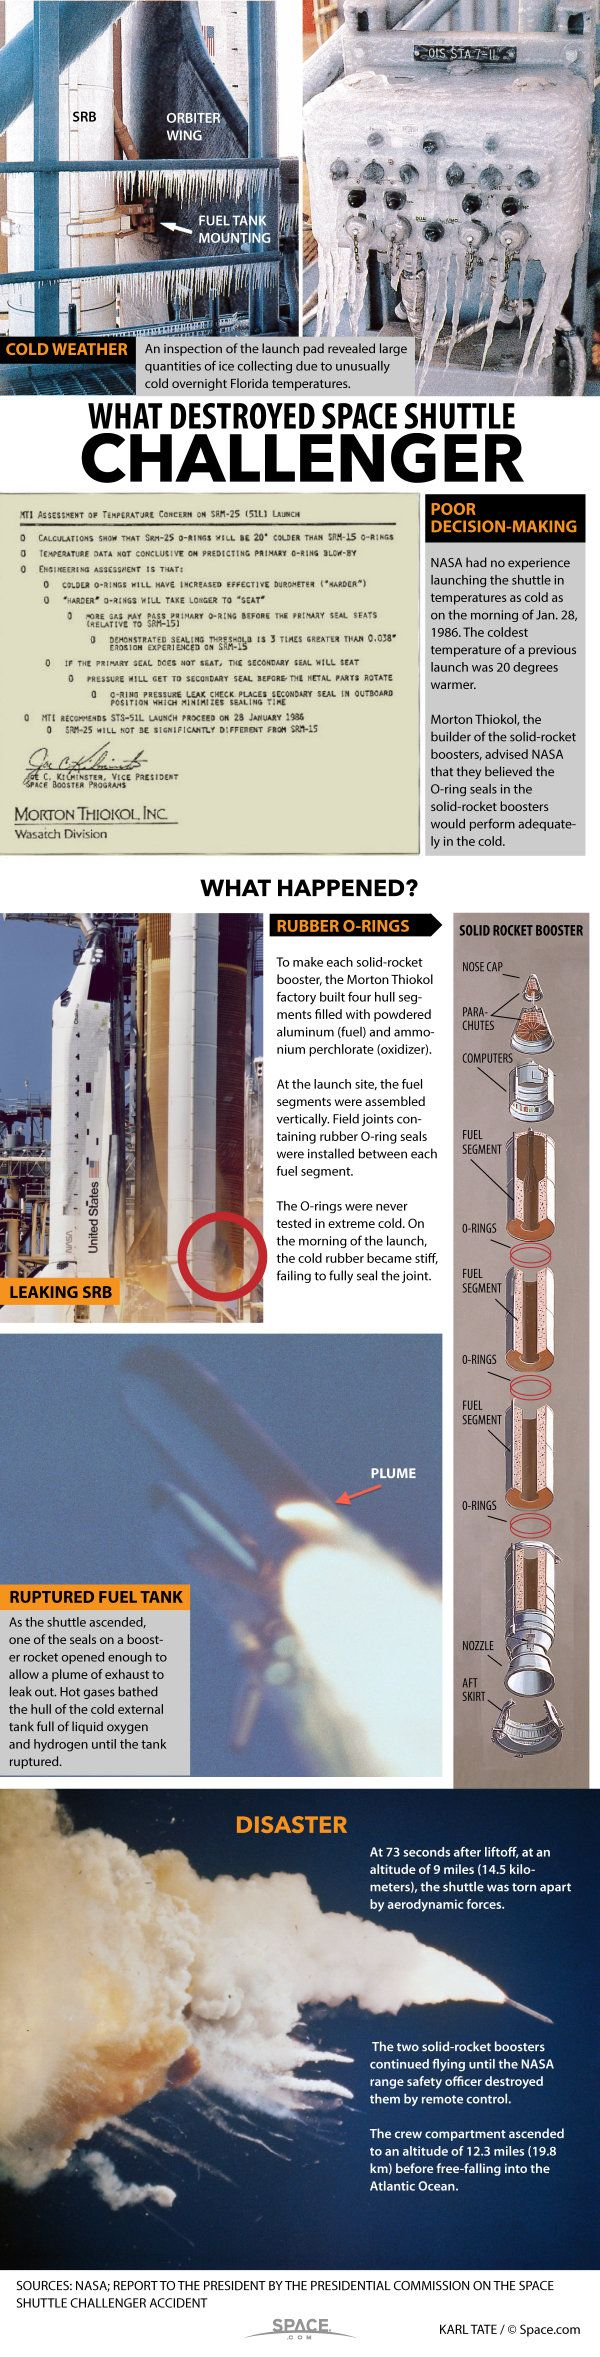 The Space Shuttle Challenger Disaster: What Happened? (Infographic)